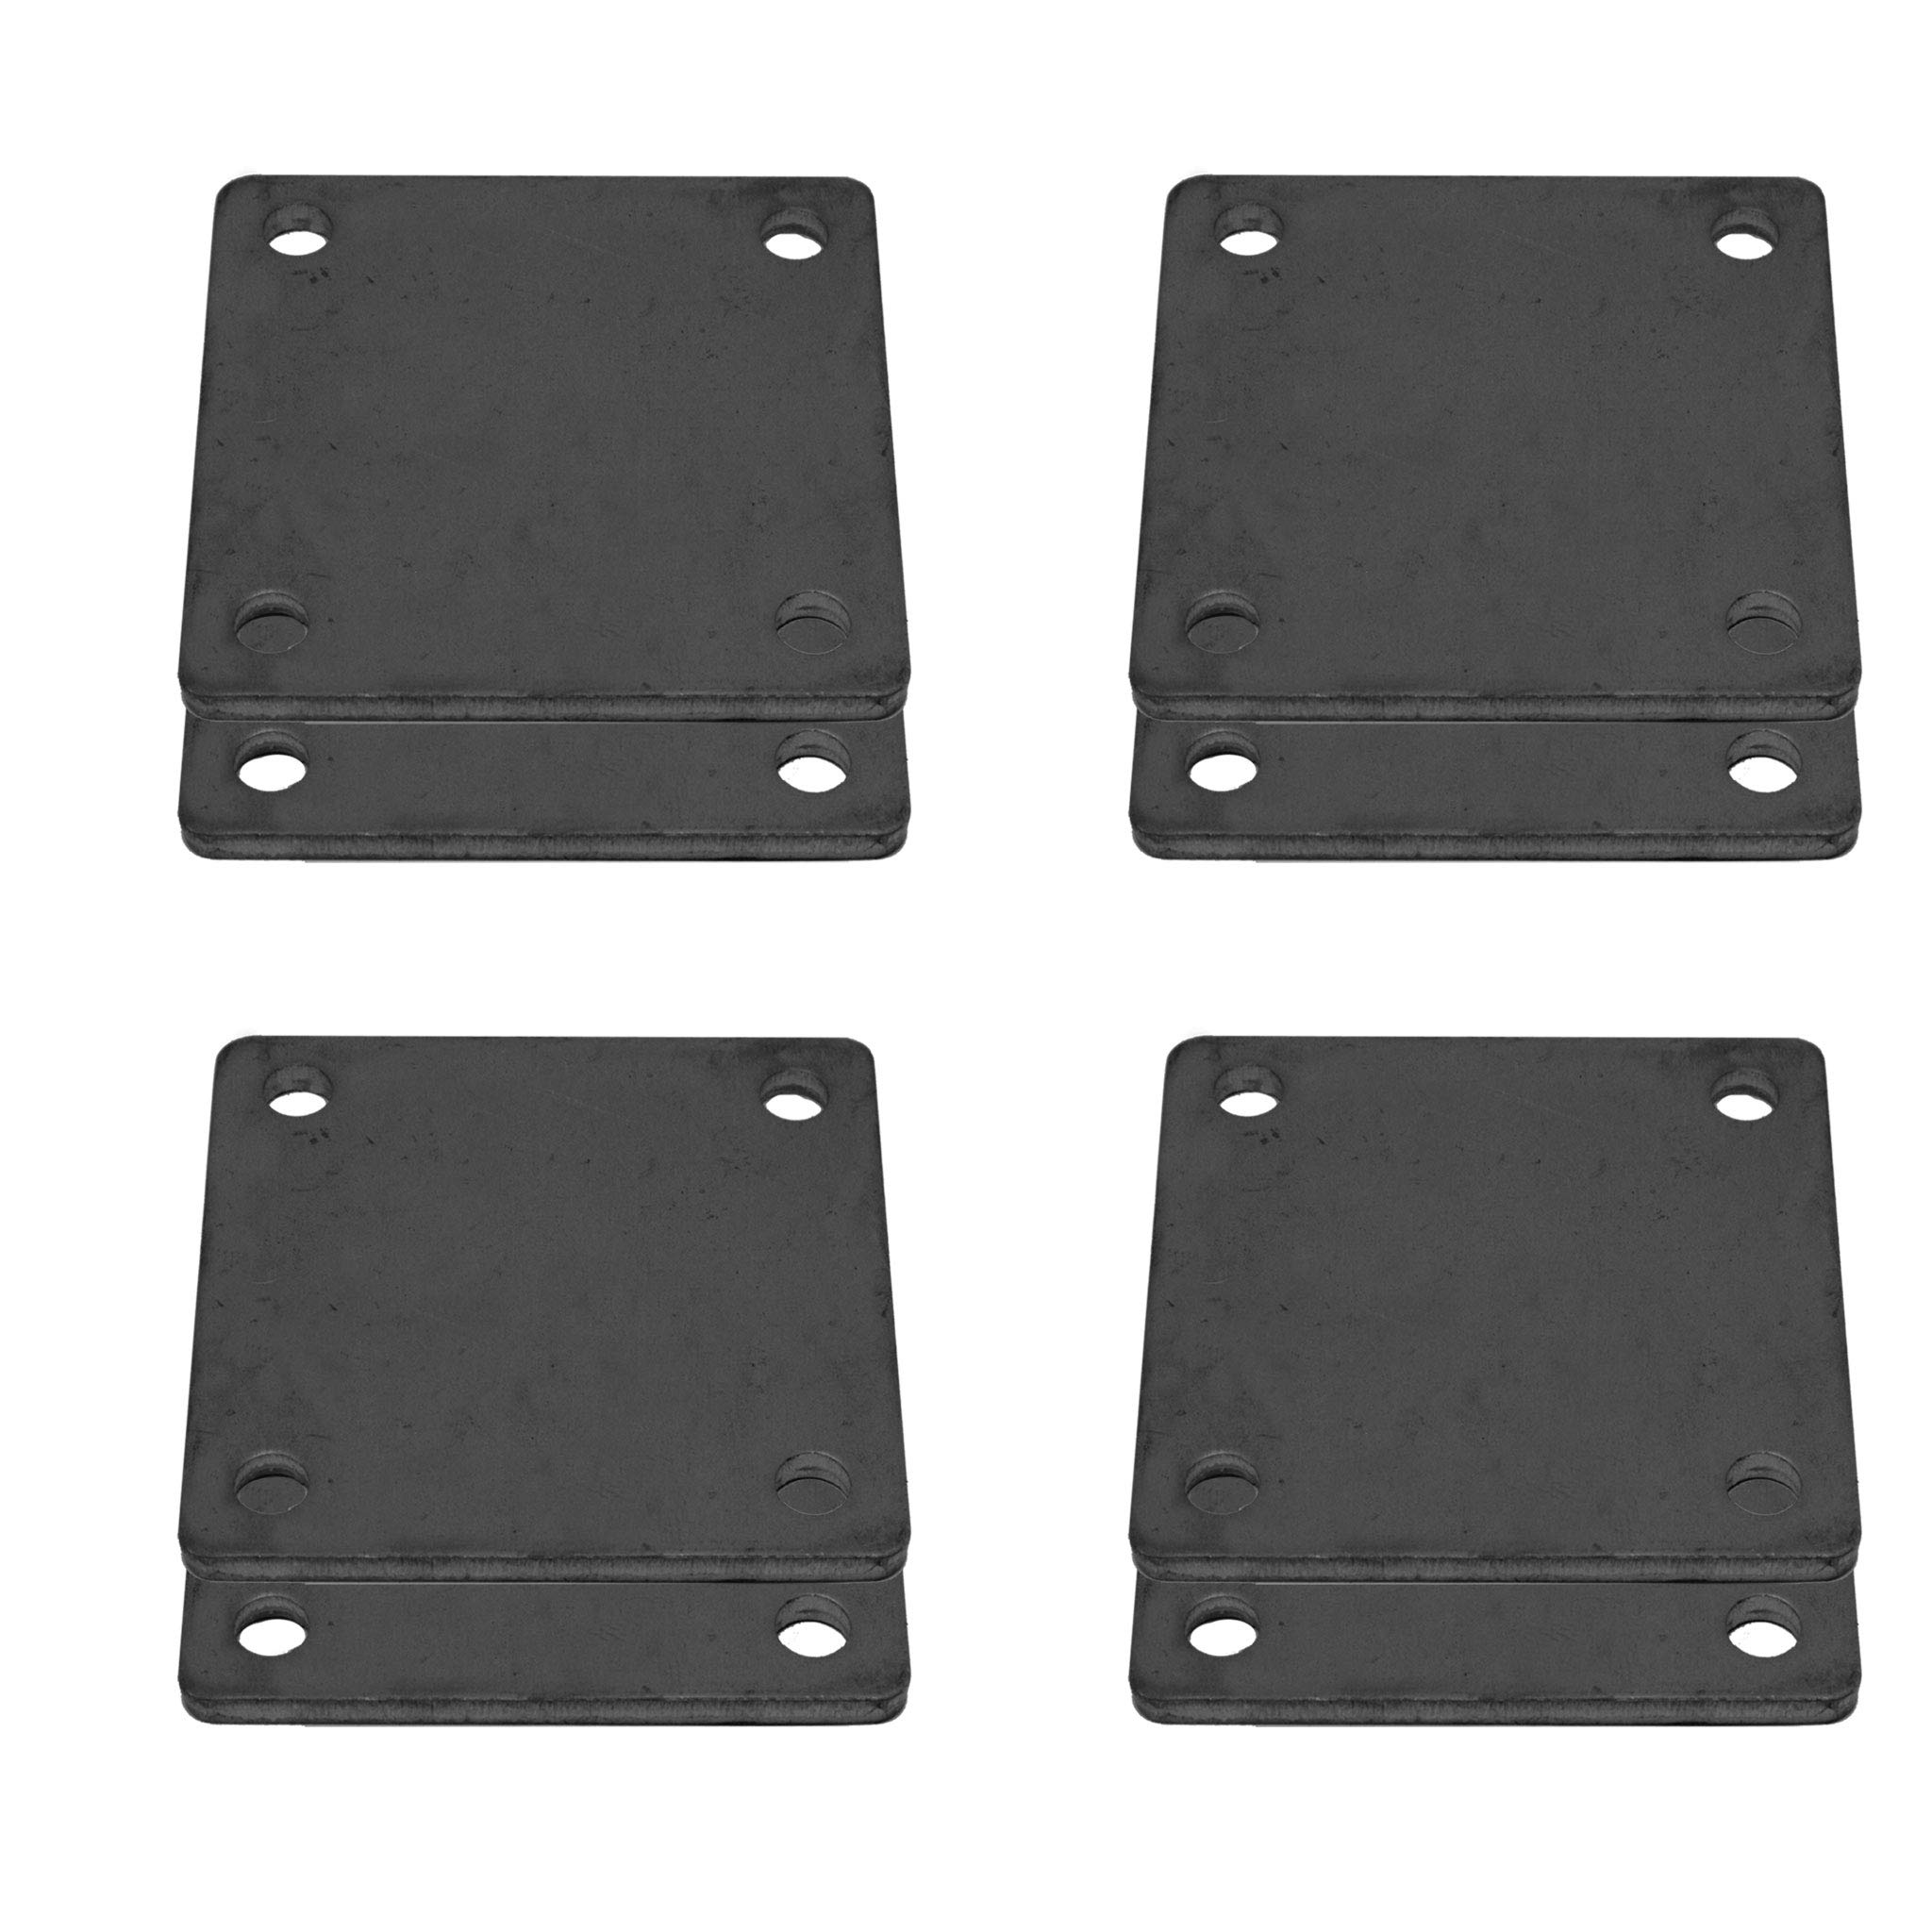 8 Pcs of Hot Rolled Steel Base Plate 6'' X 6'' with 4 Holes and Rounded Corners by Bobco Metals